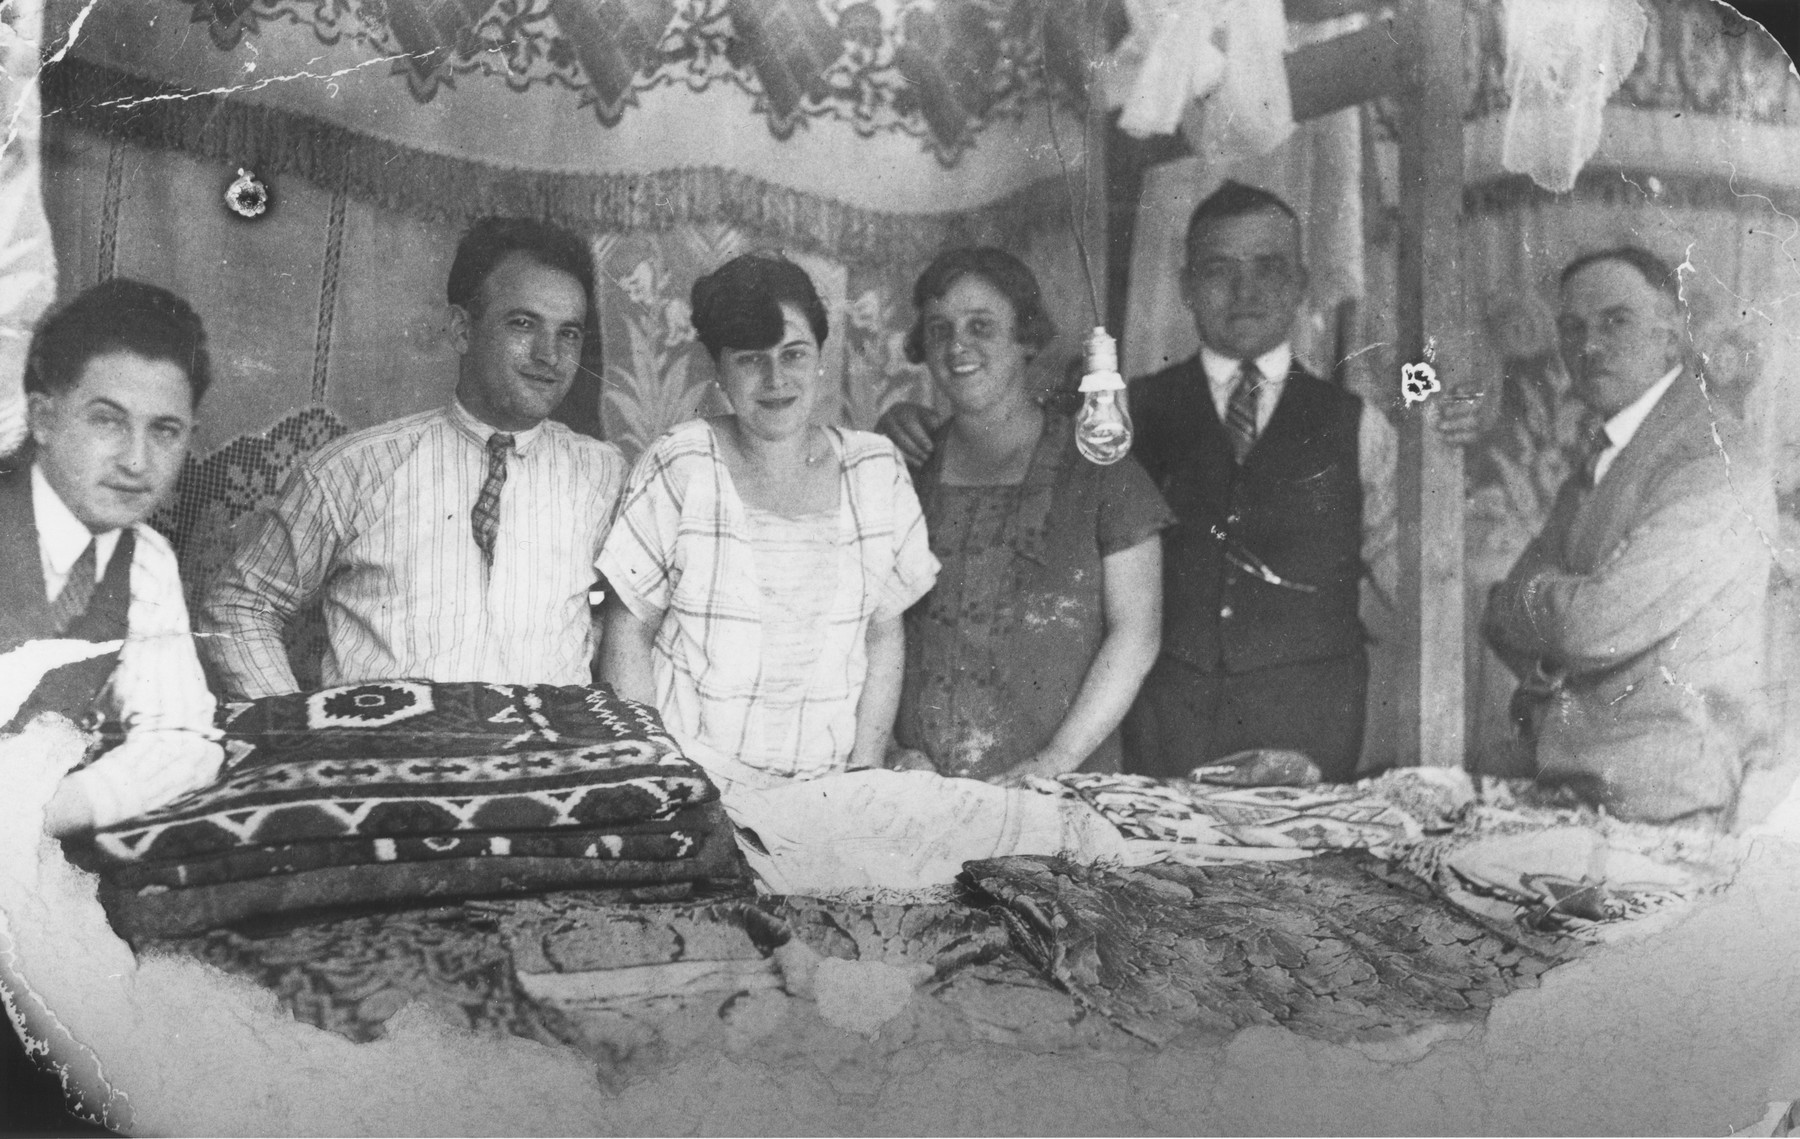 Jakob Uszerowicz and a group of friends examine embroidered and patterned fabrics.